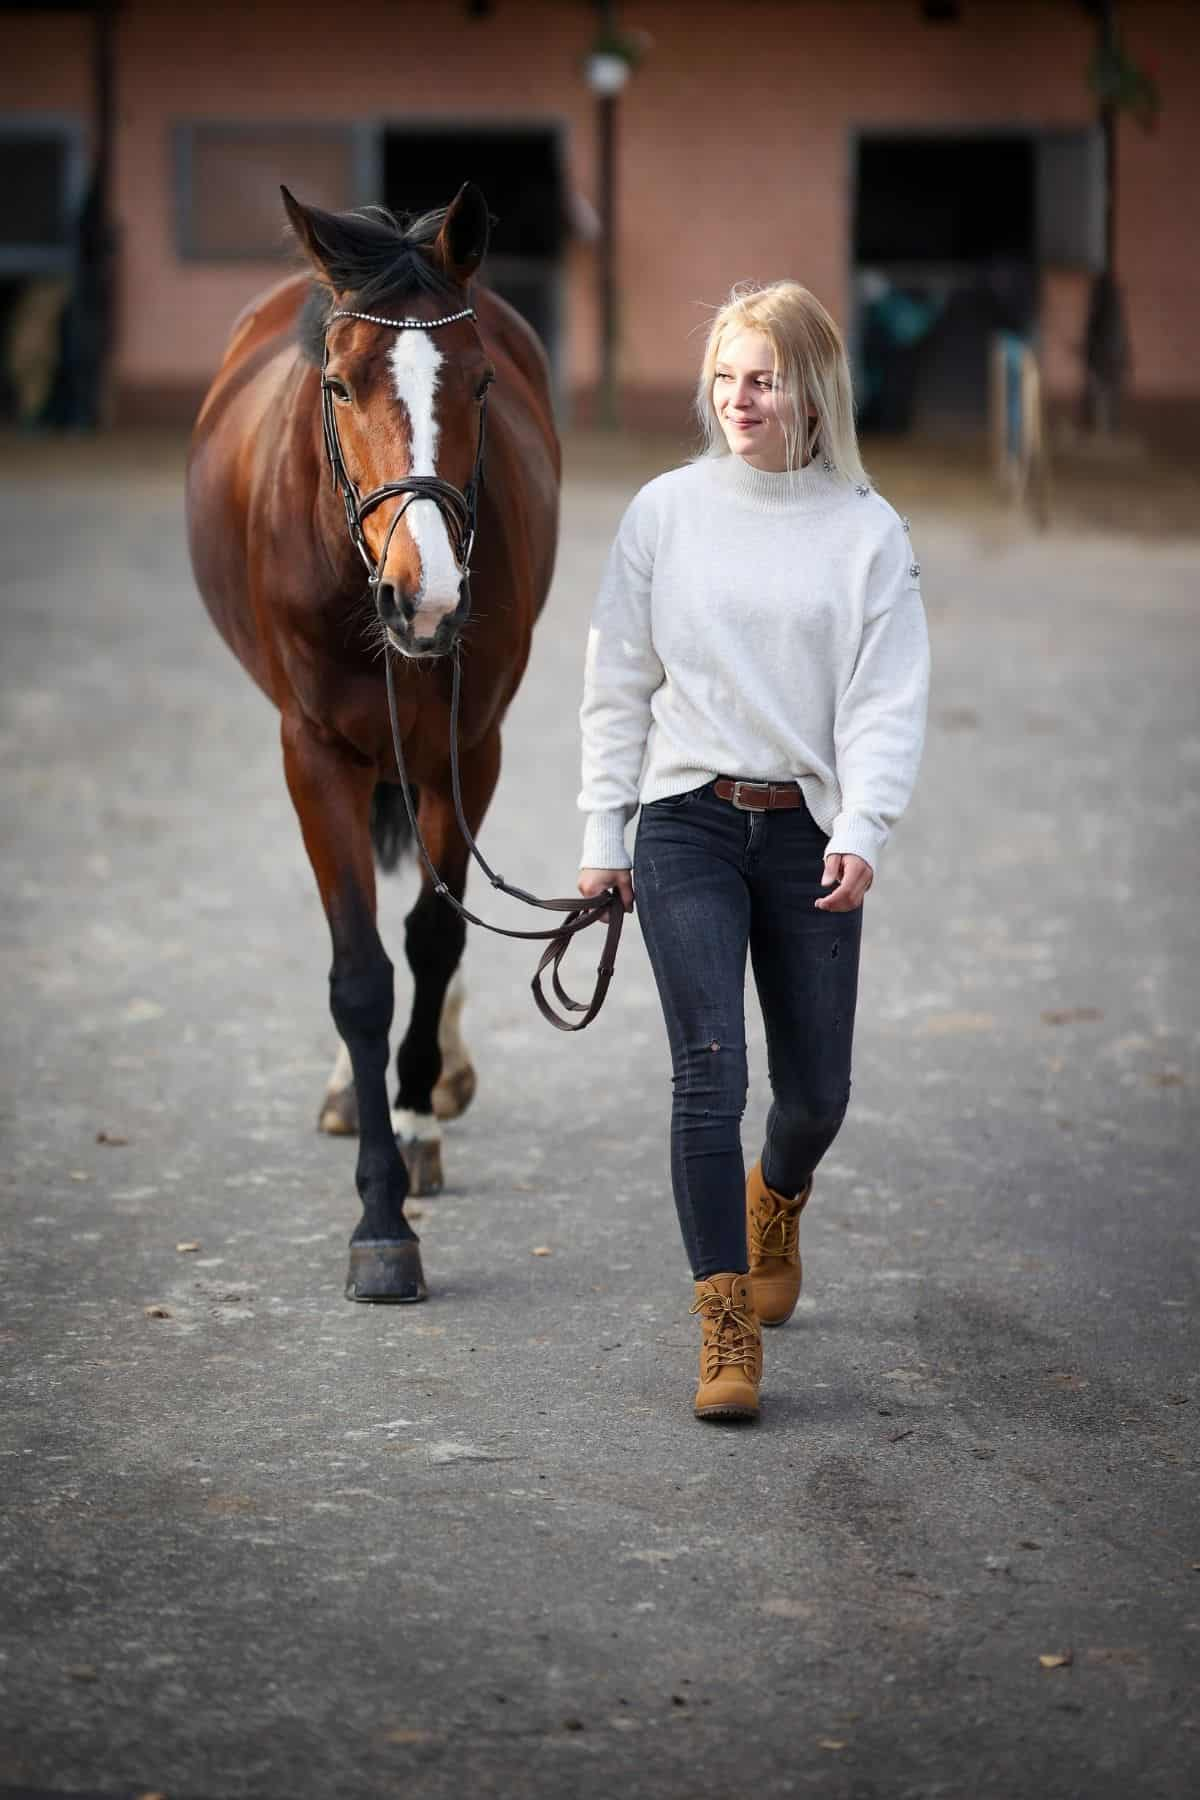 woman in white leading brown horse